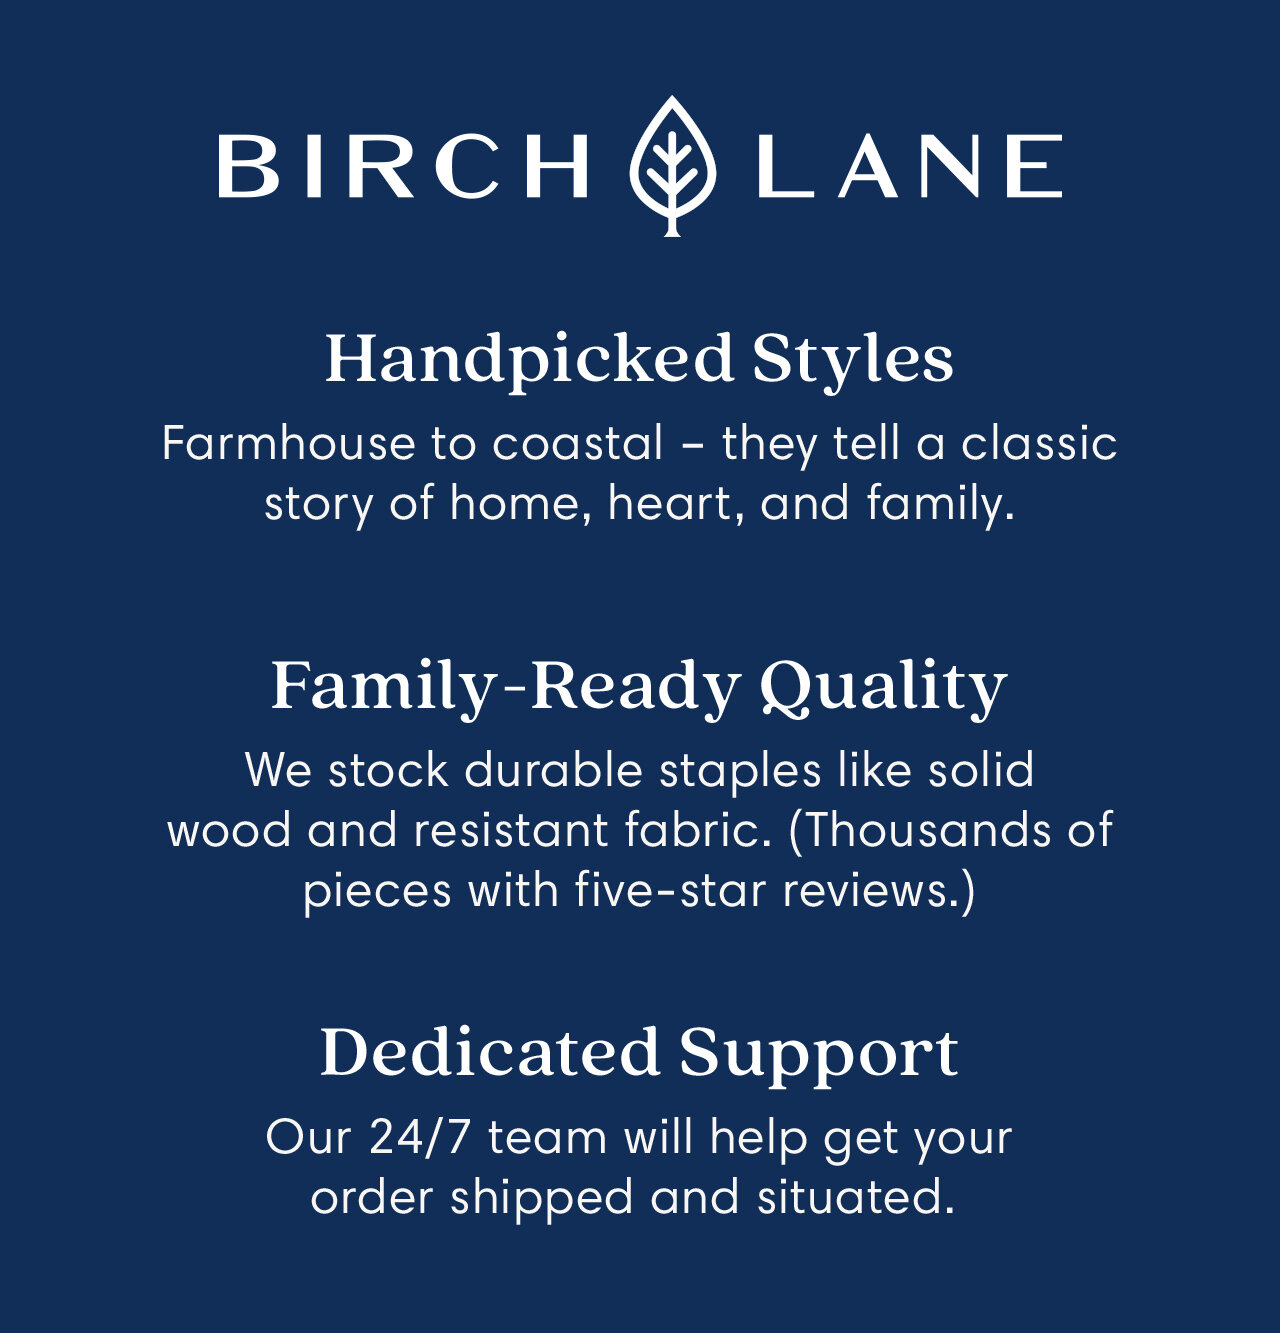 Birch Lane: Handpicked Styles, Family-Ready Quality, Family-Ready Quality